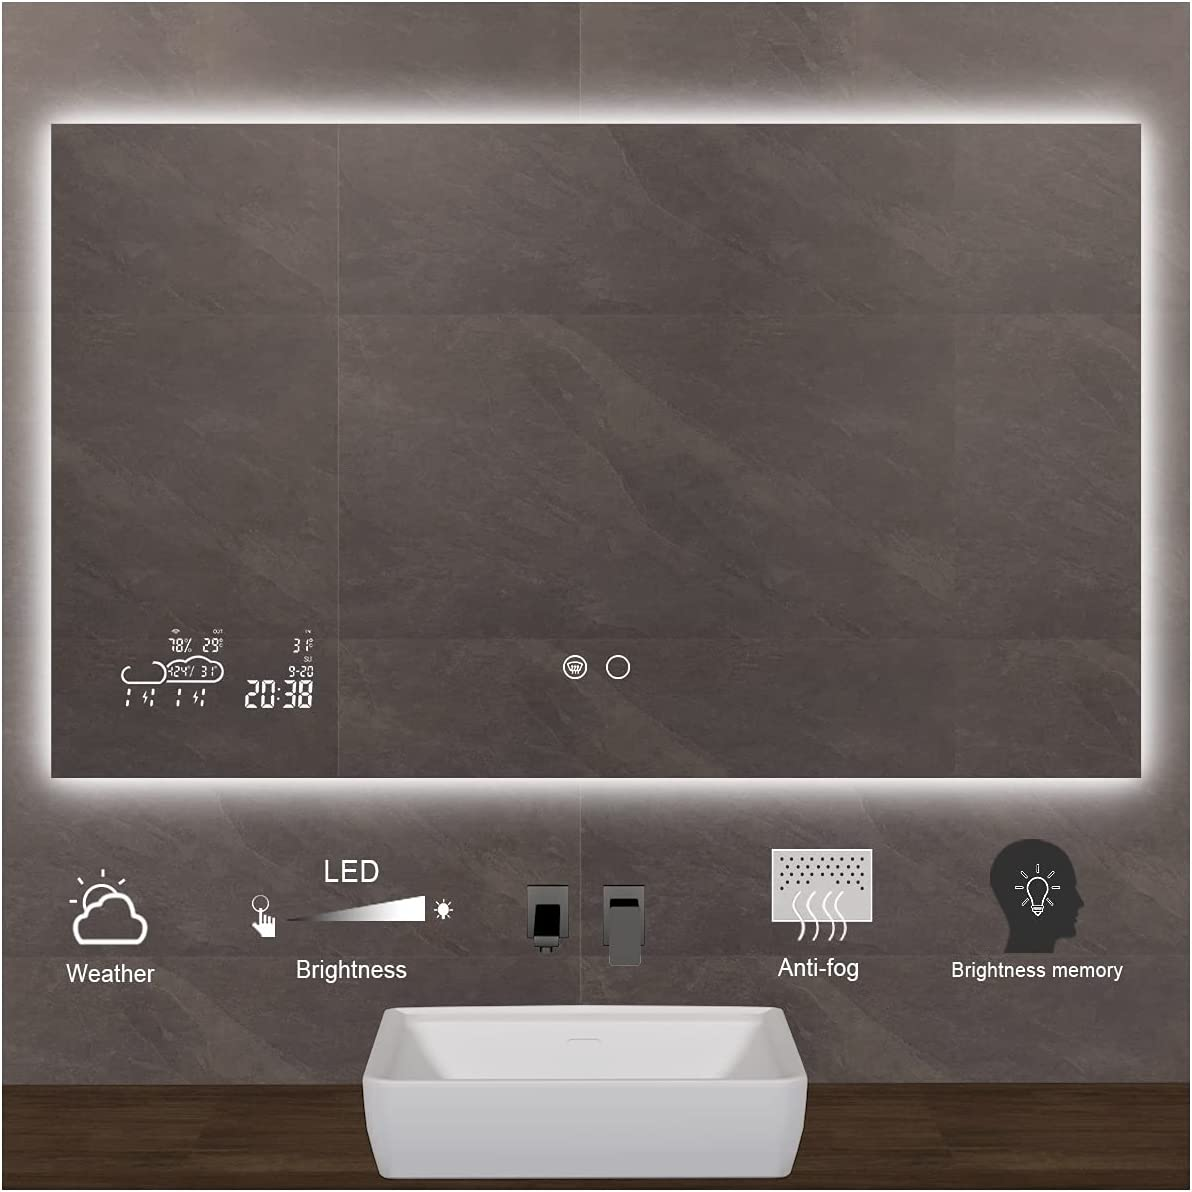 Keonjinn 40 x 24 Inch Raleigh Mall Smart Touch Switch LED Lighted Shipping included Mirror with